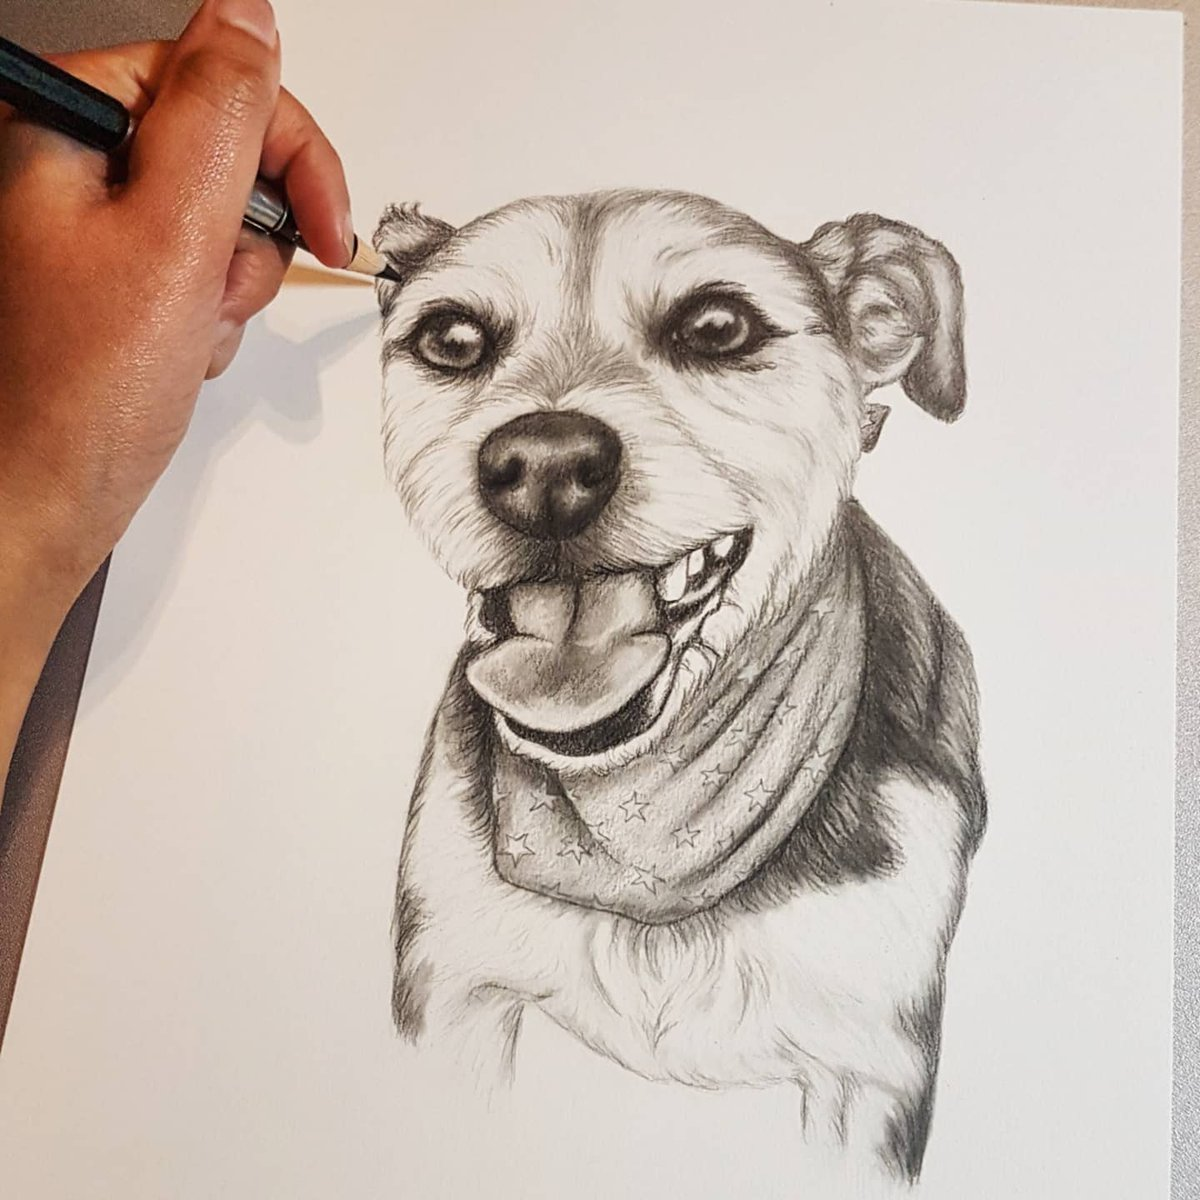 How cute is this little guy?!  Valentine's day is coming up.  Why not order your loved one a custom drawing?   http://WWW.MILLIEMACDOUGALLART.COM  #Art #Artwork #Drawing #Artist #Portraitartist #Portrait #Pencilportrait #petportrait #petportraits #petportraitartist #customart #dog #puppypic.twitter.com/oGfeiePPiC